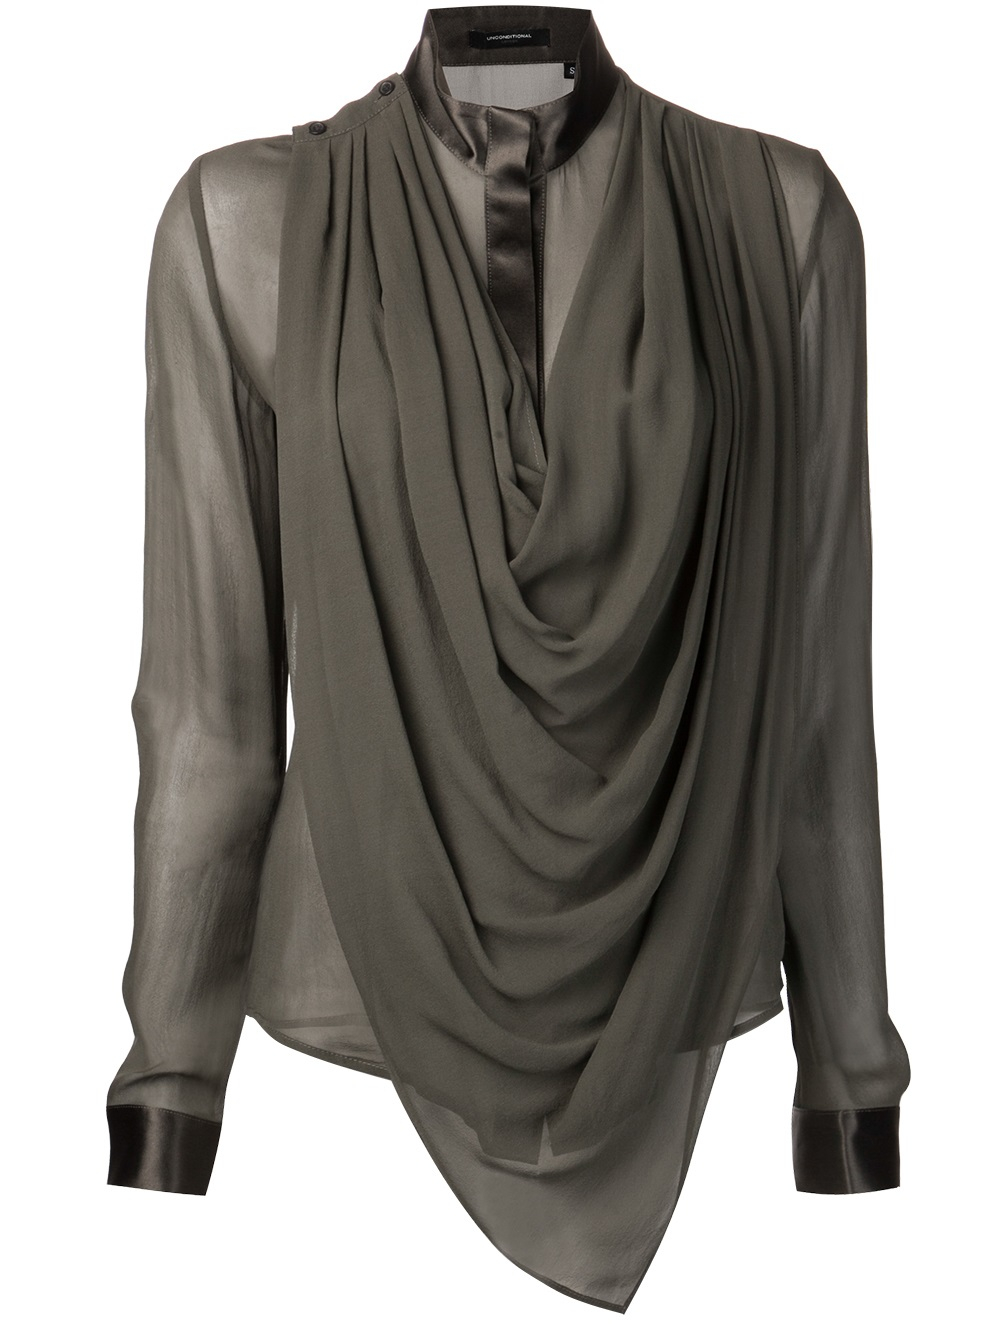 stand drapes on draping the img draped fabrickated blouse schiaparelli